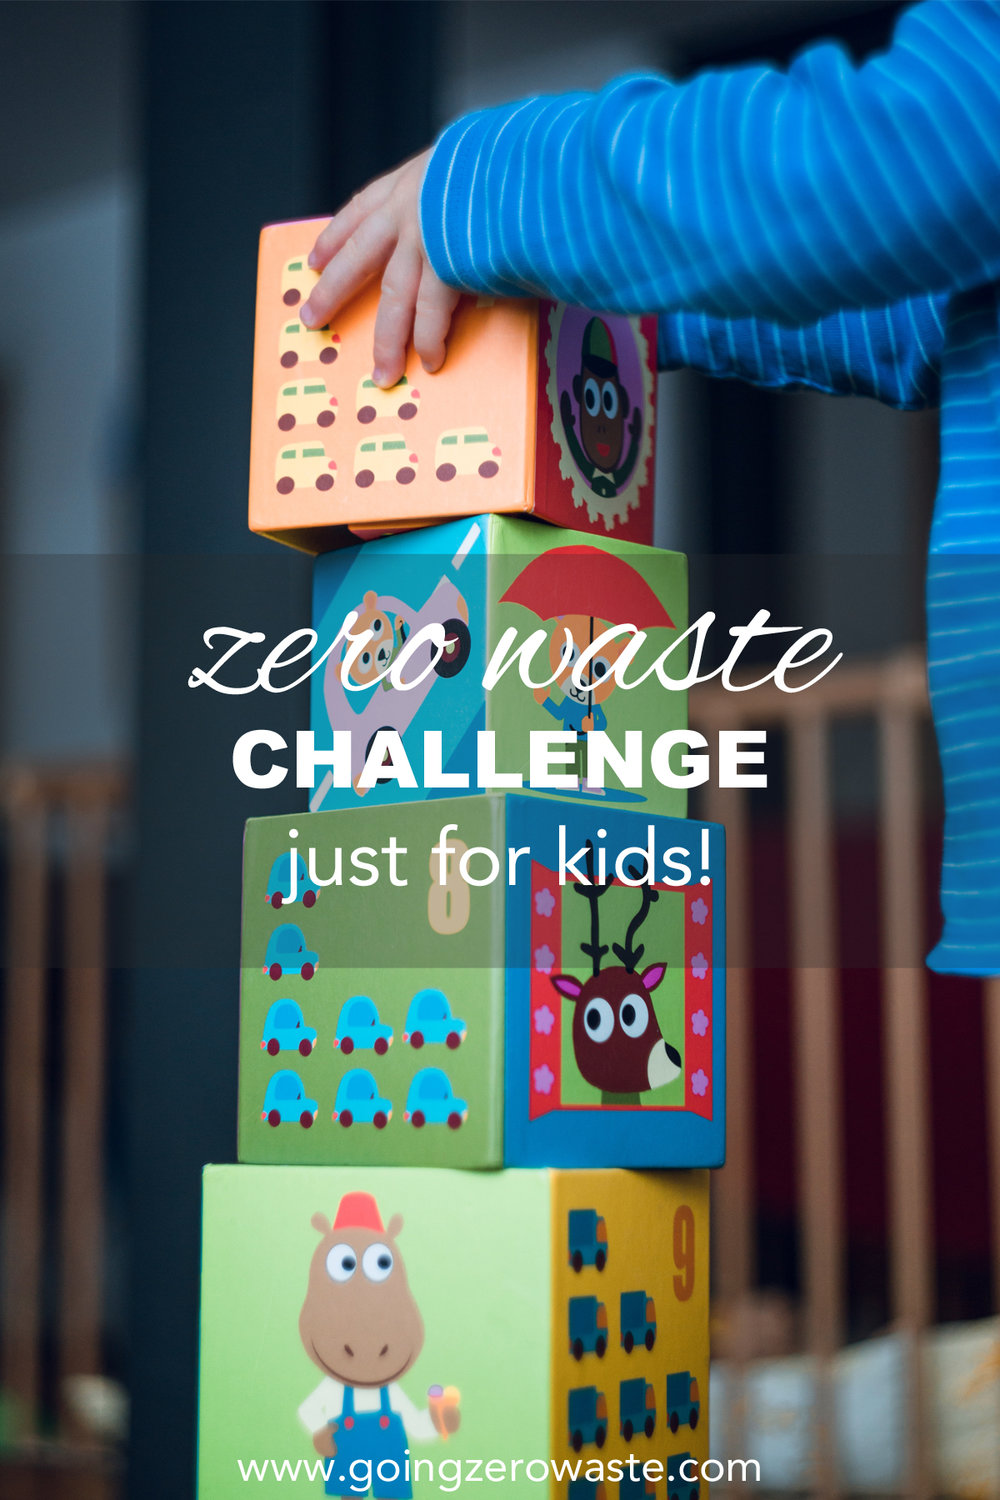 The zero waste challenge just for kids! from www.goingzerowaste.com #zerowaste #ecofriendly #gogreen #simpleliving